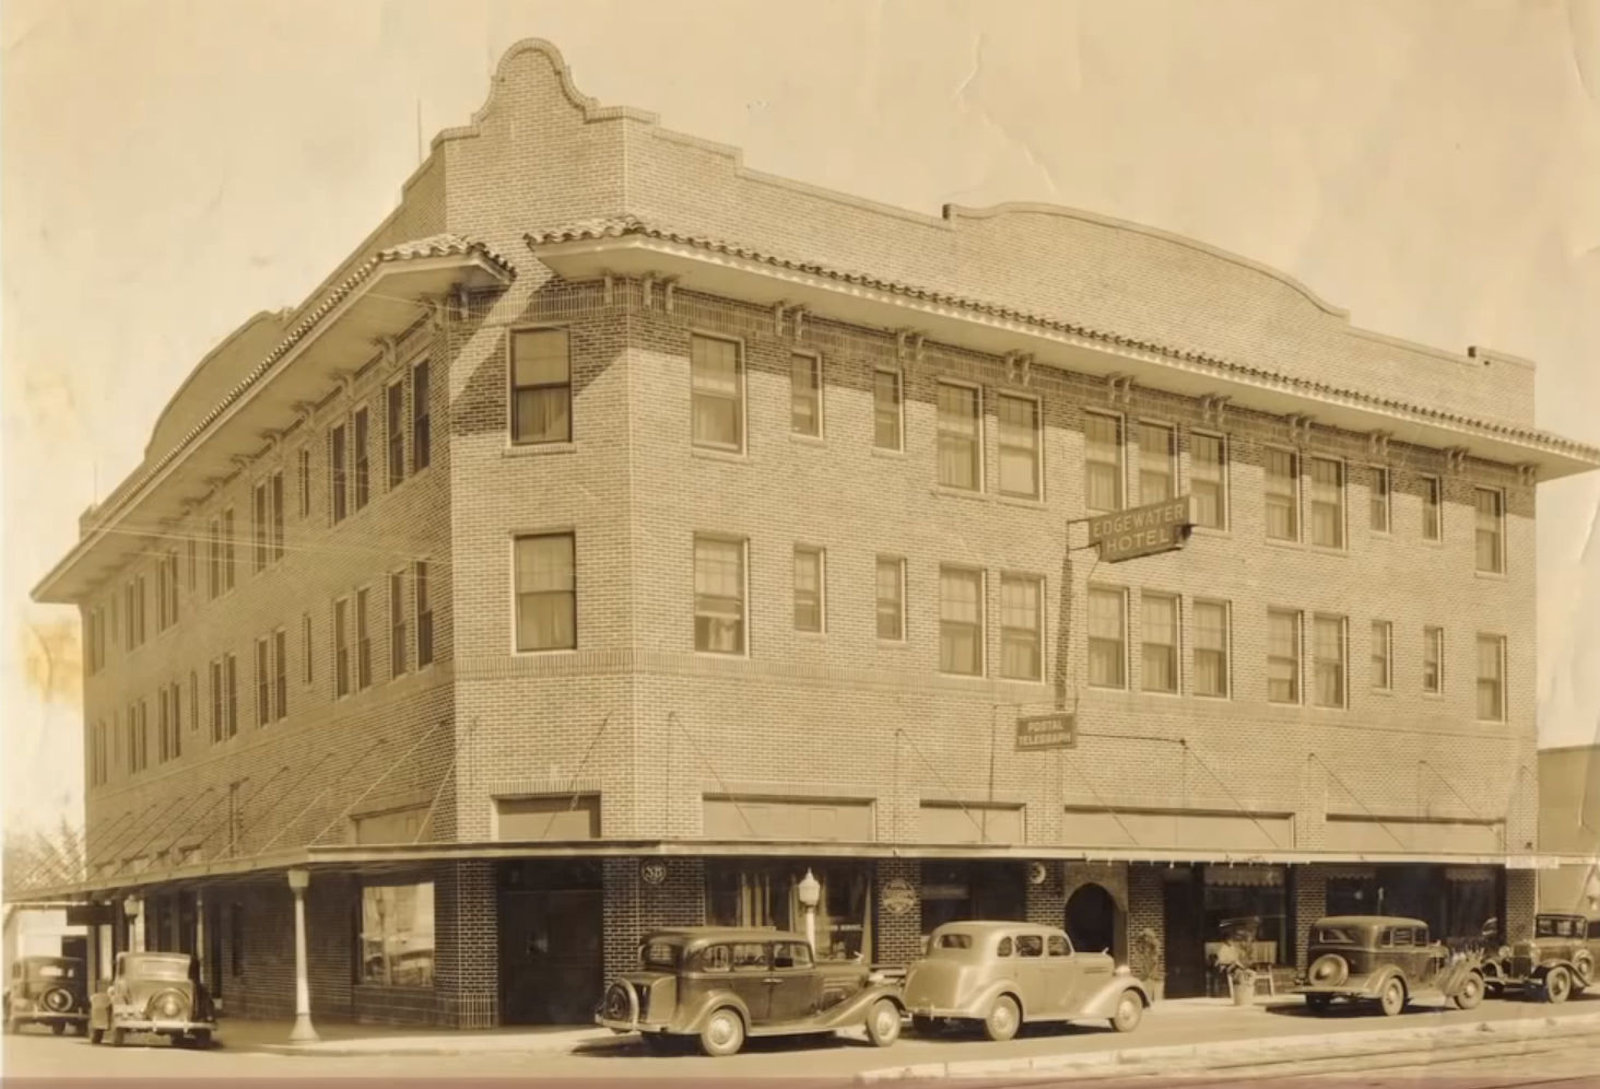 Aged picture of Hotel Edgewater with old cars parked outside